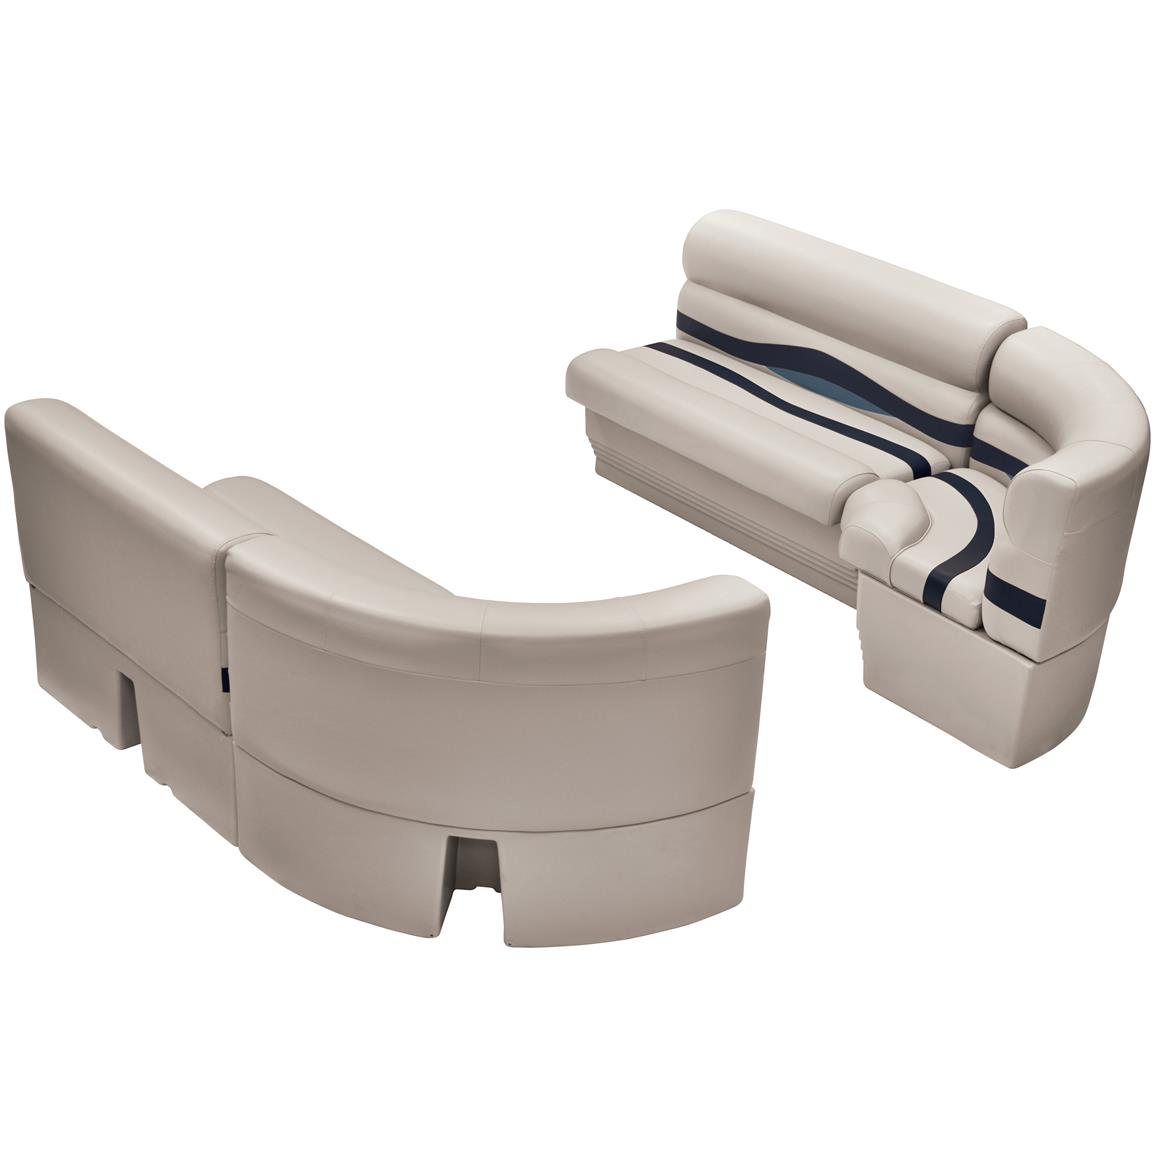 Wise® Premier Pontoon Medium Bow Radius Front Seating Group, Color D: Platinum Punch / Navy / Cobalt